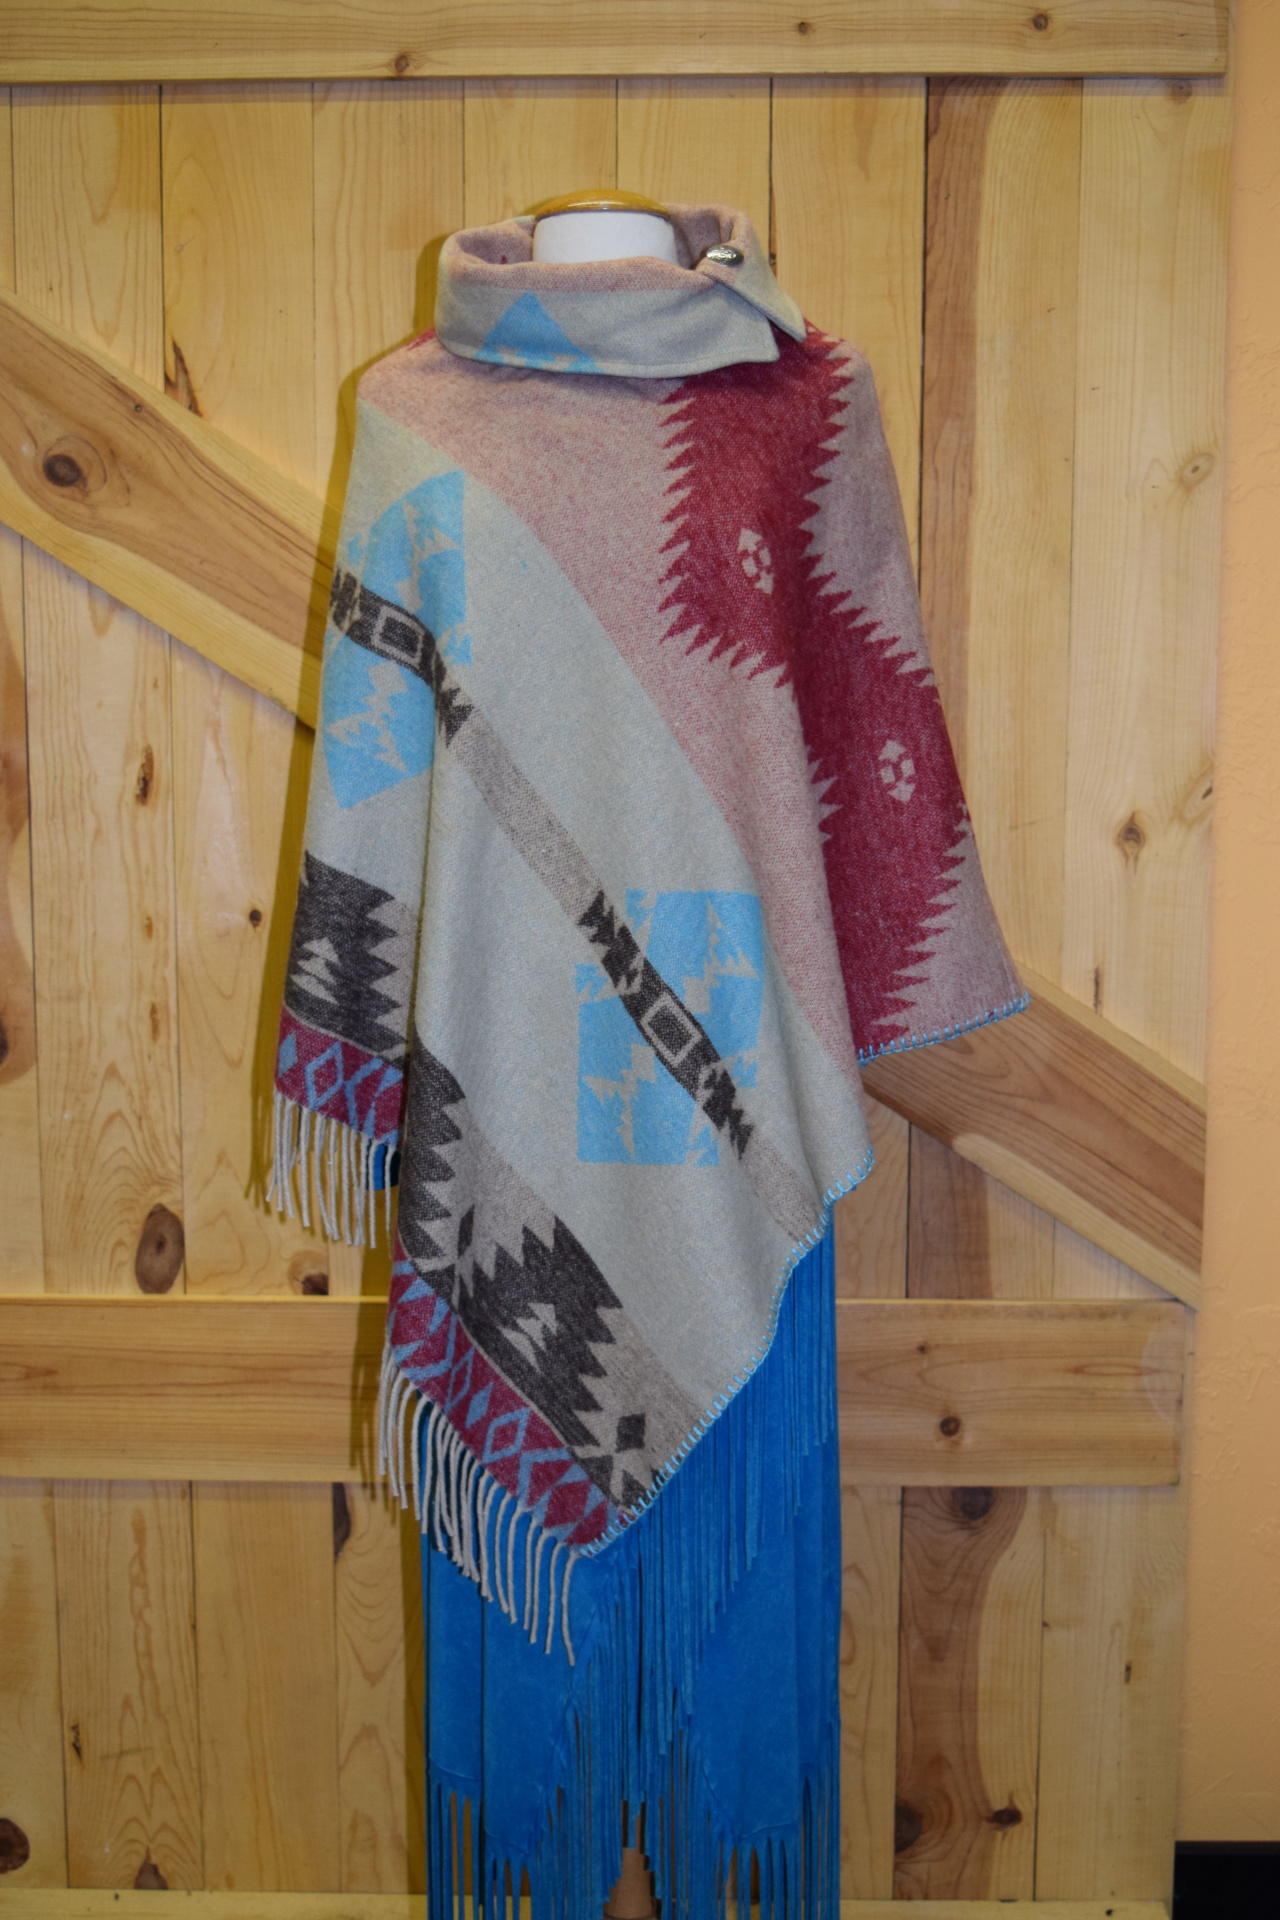 #208ASST. LRF - ANTIQUE L/R FRINGE BUTTON COLLAR PONCHO - O/S - $129.95 -- SALE $99.95